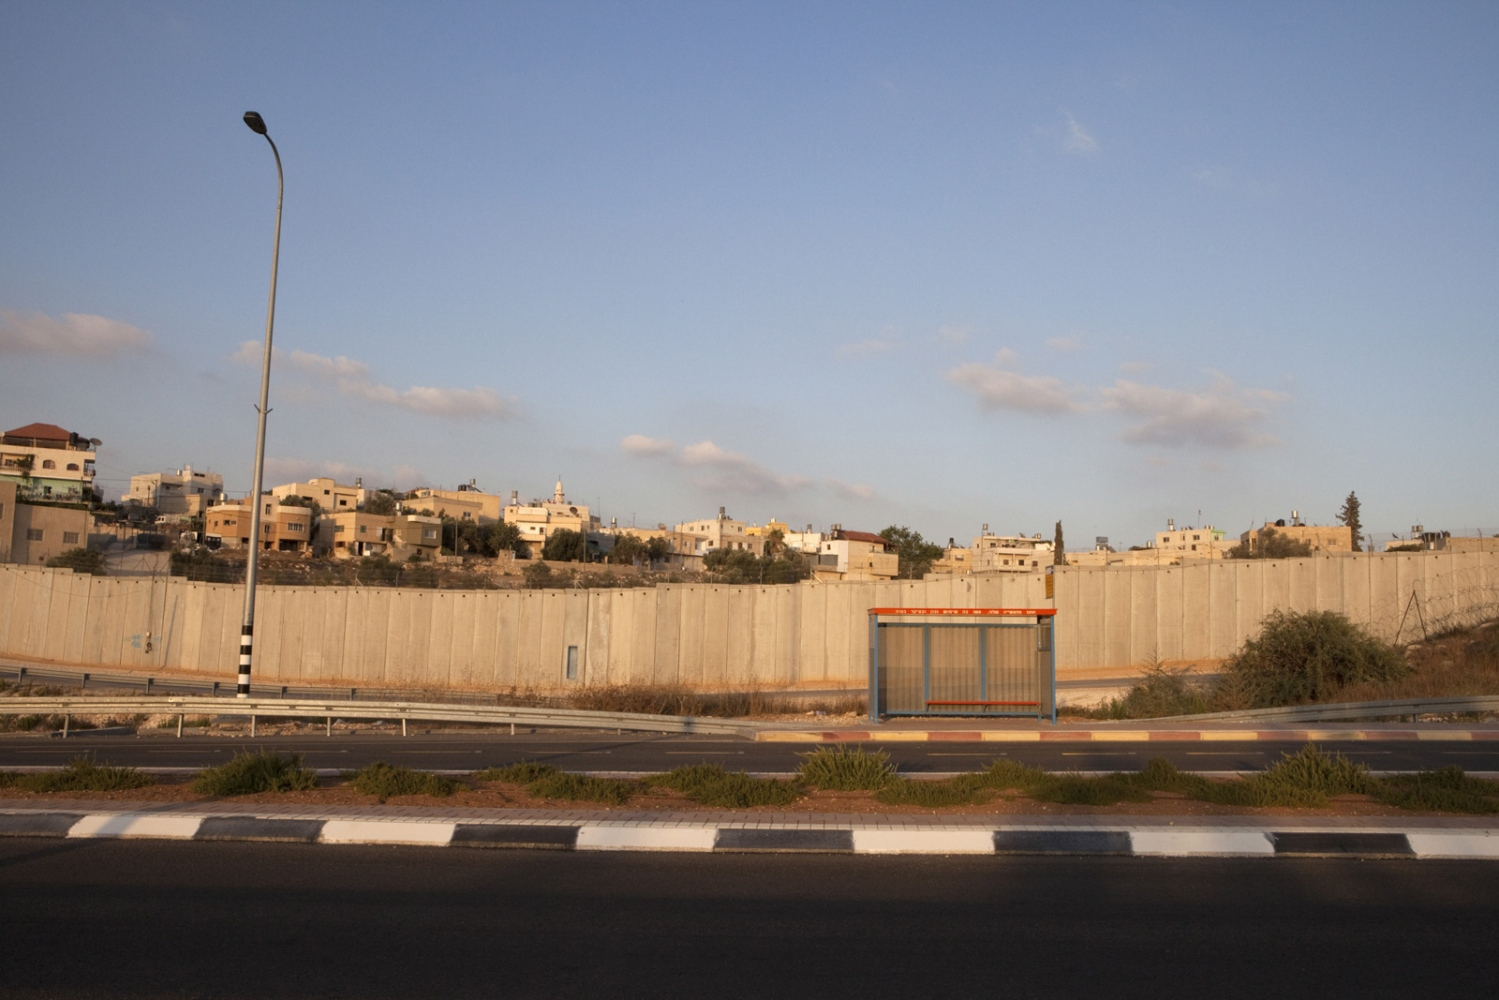 An Israeli Bus stop on route 358. The Palestinian village of Beit Atwa is located behind the barrier and the Green Line